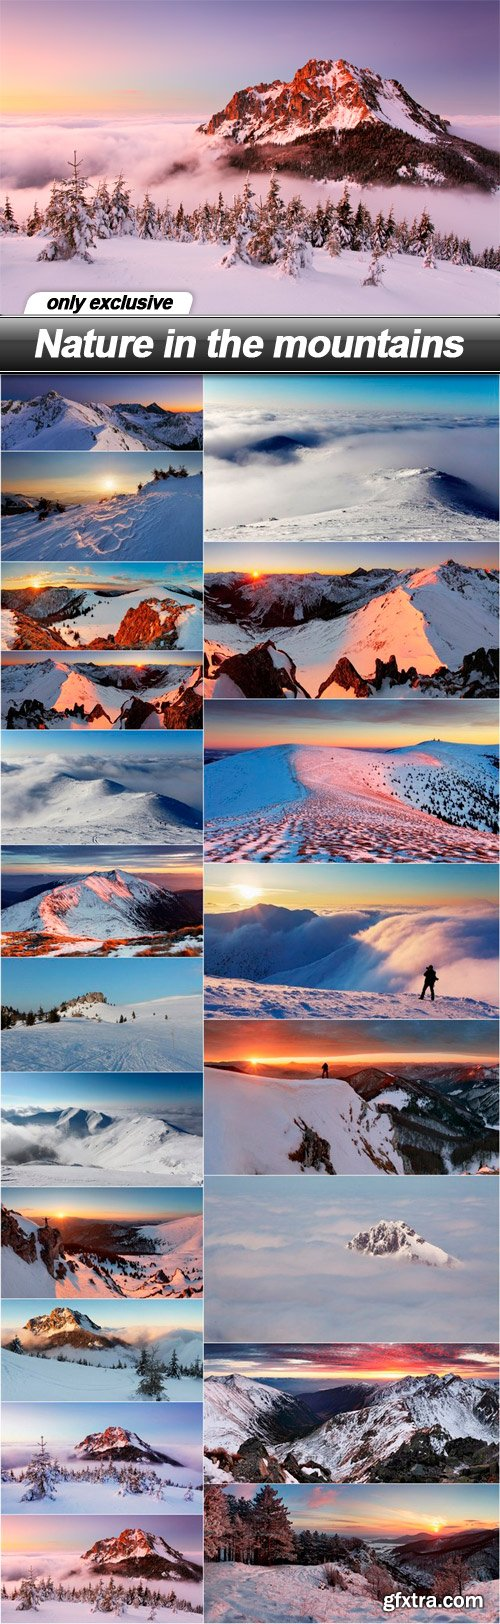 Nature in the mountains - 20 UHQ JPEG